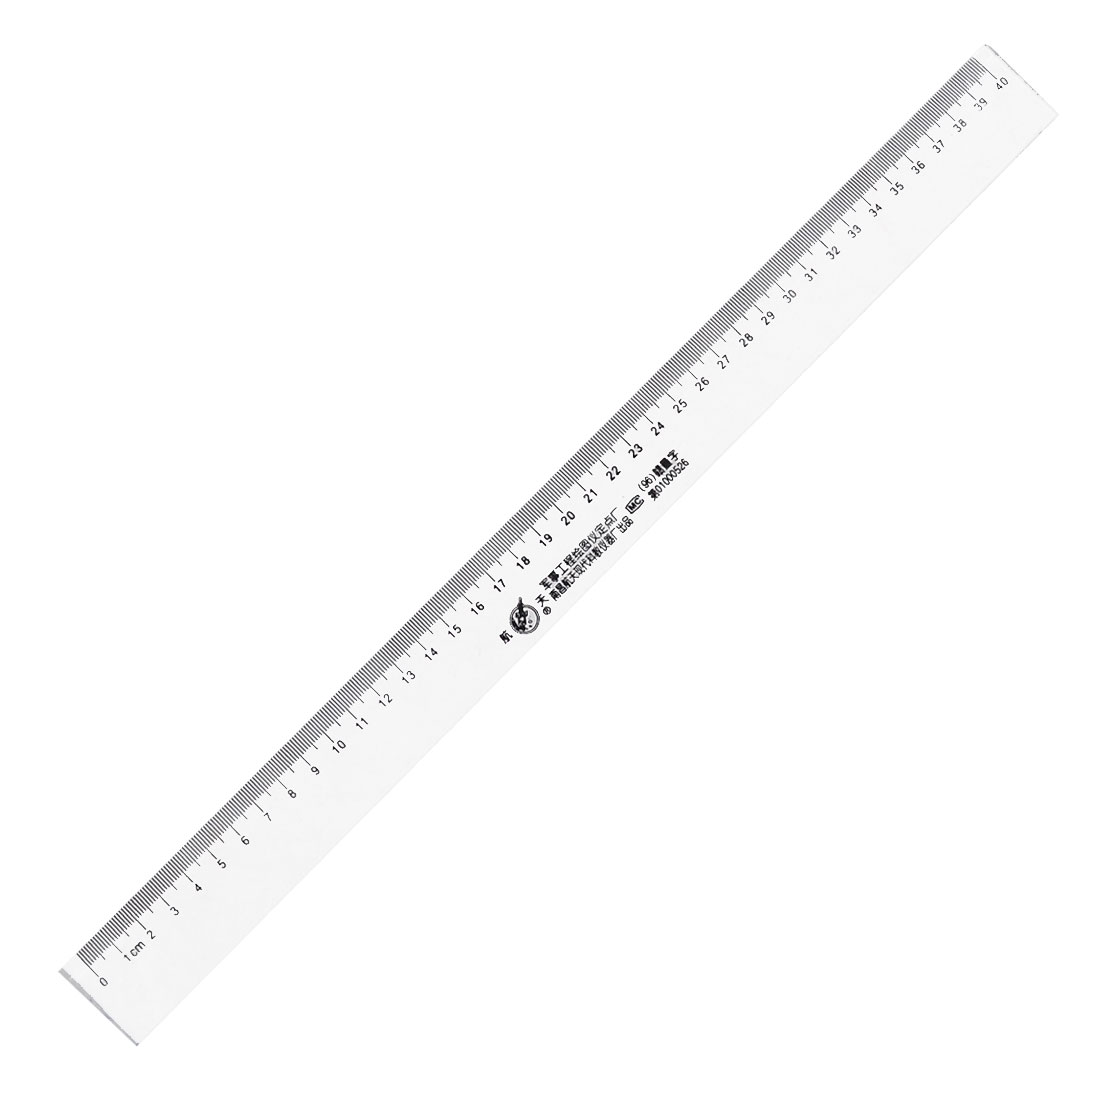 40cm Measurement Black Clear Hard Plastic Ruler for Students